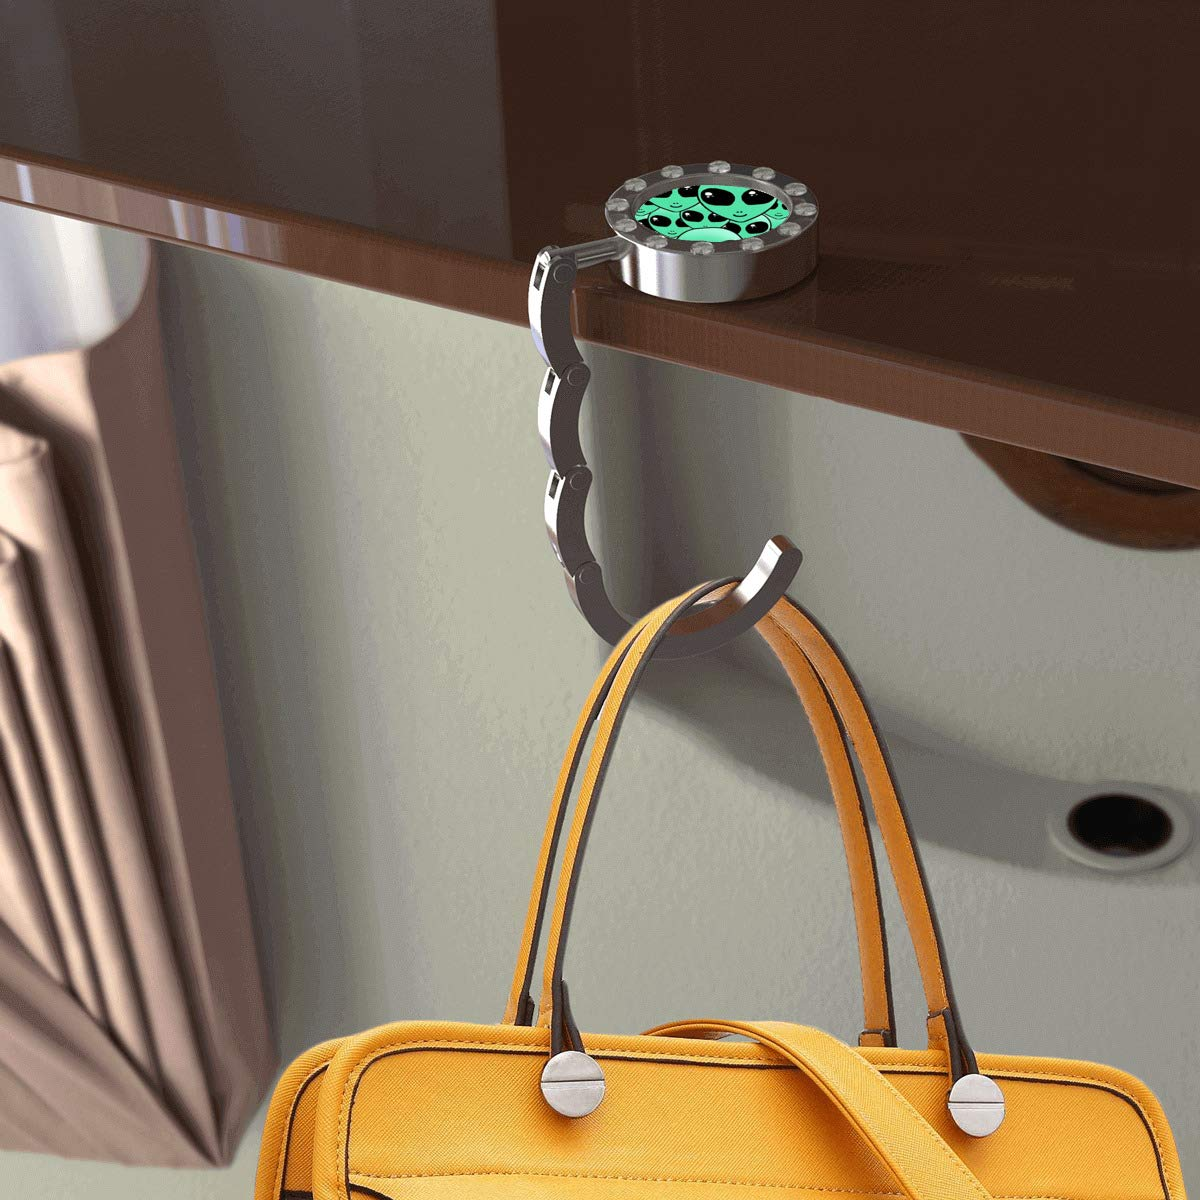 Round with drill Unicorn and Narwhal Bag Hanger for Women Convenient Stylish Suitable for Daily Use of Bag Hanger